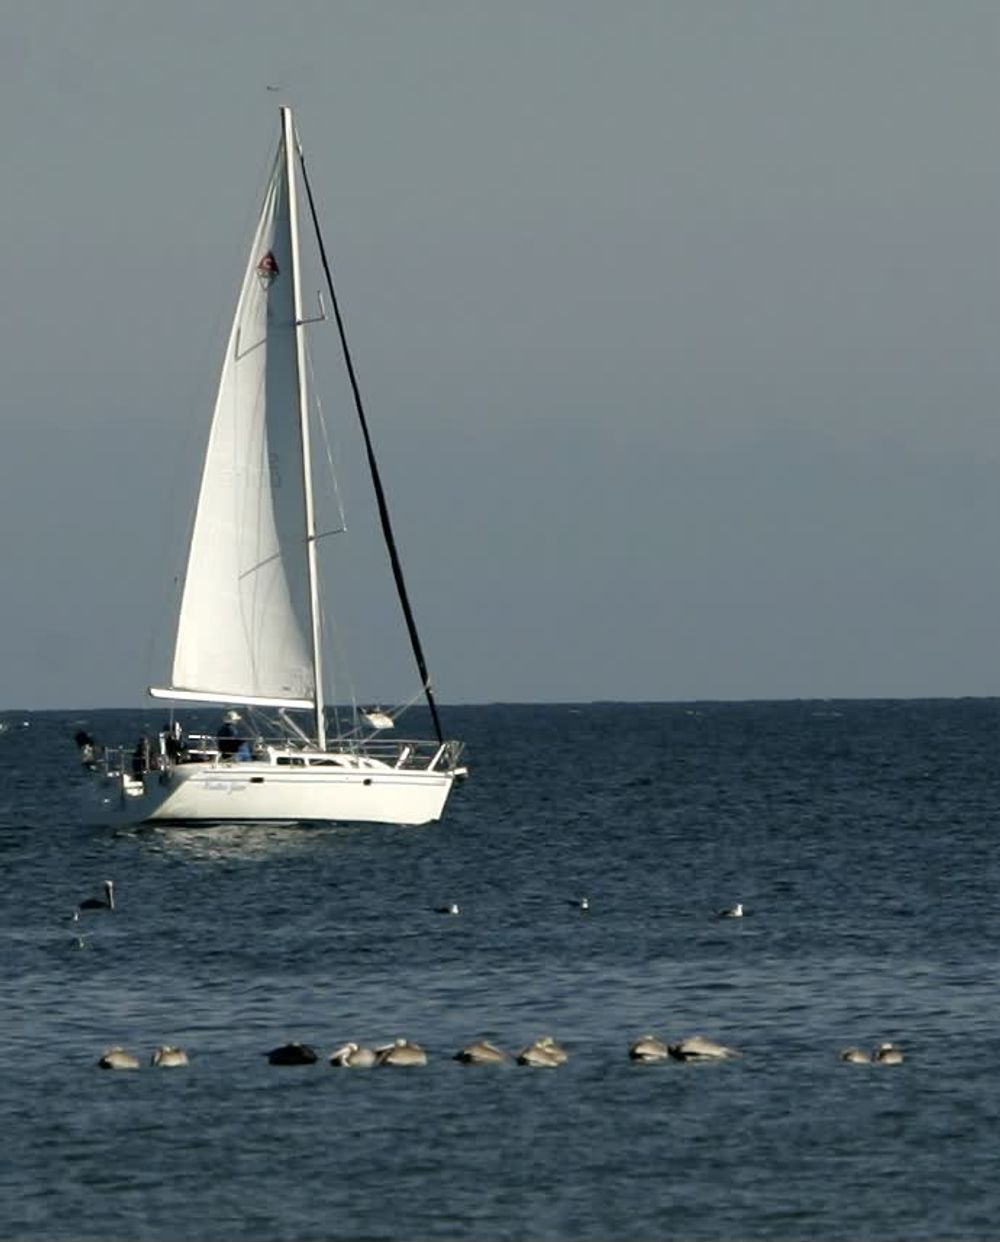 title: Sailing at Santa Barbara